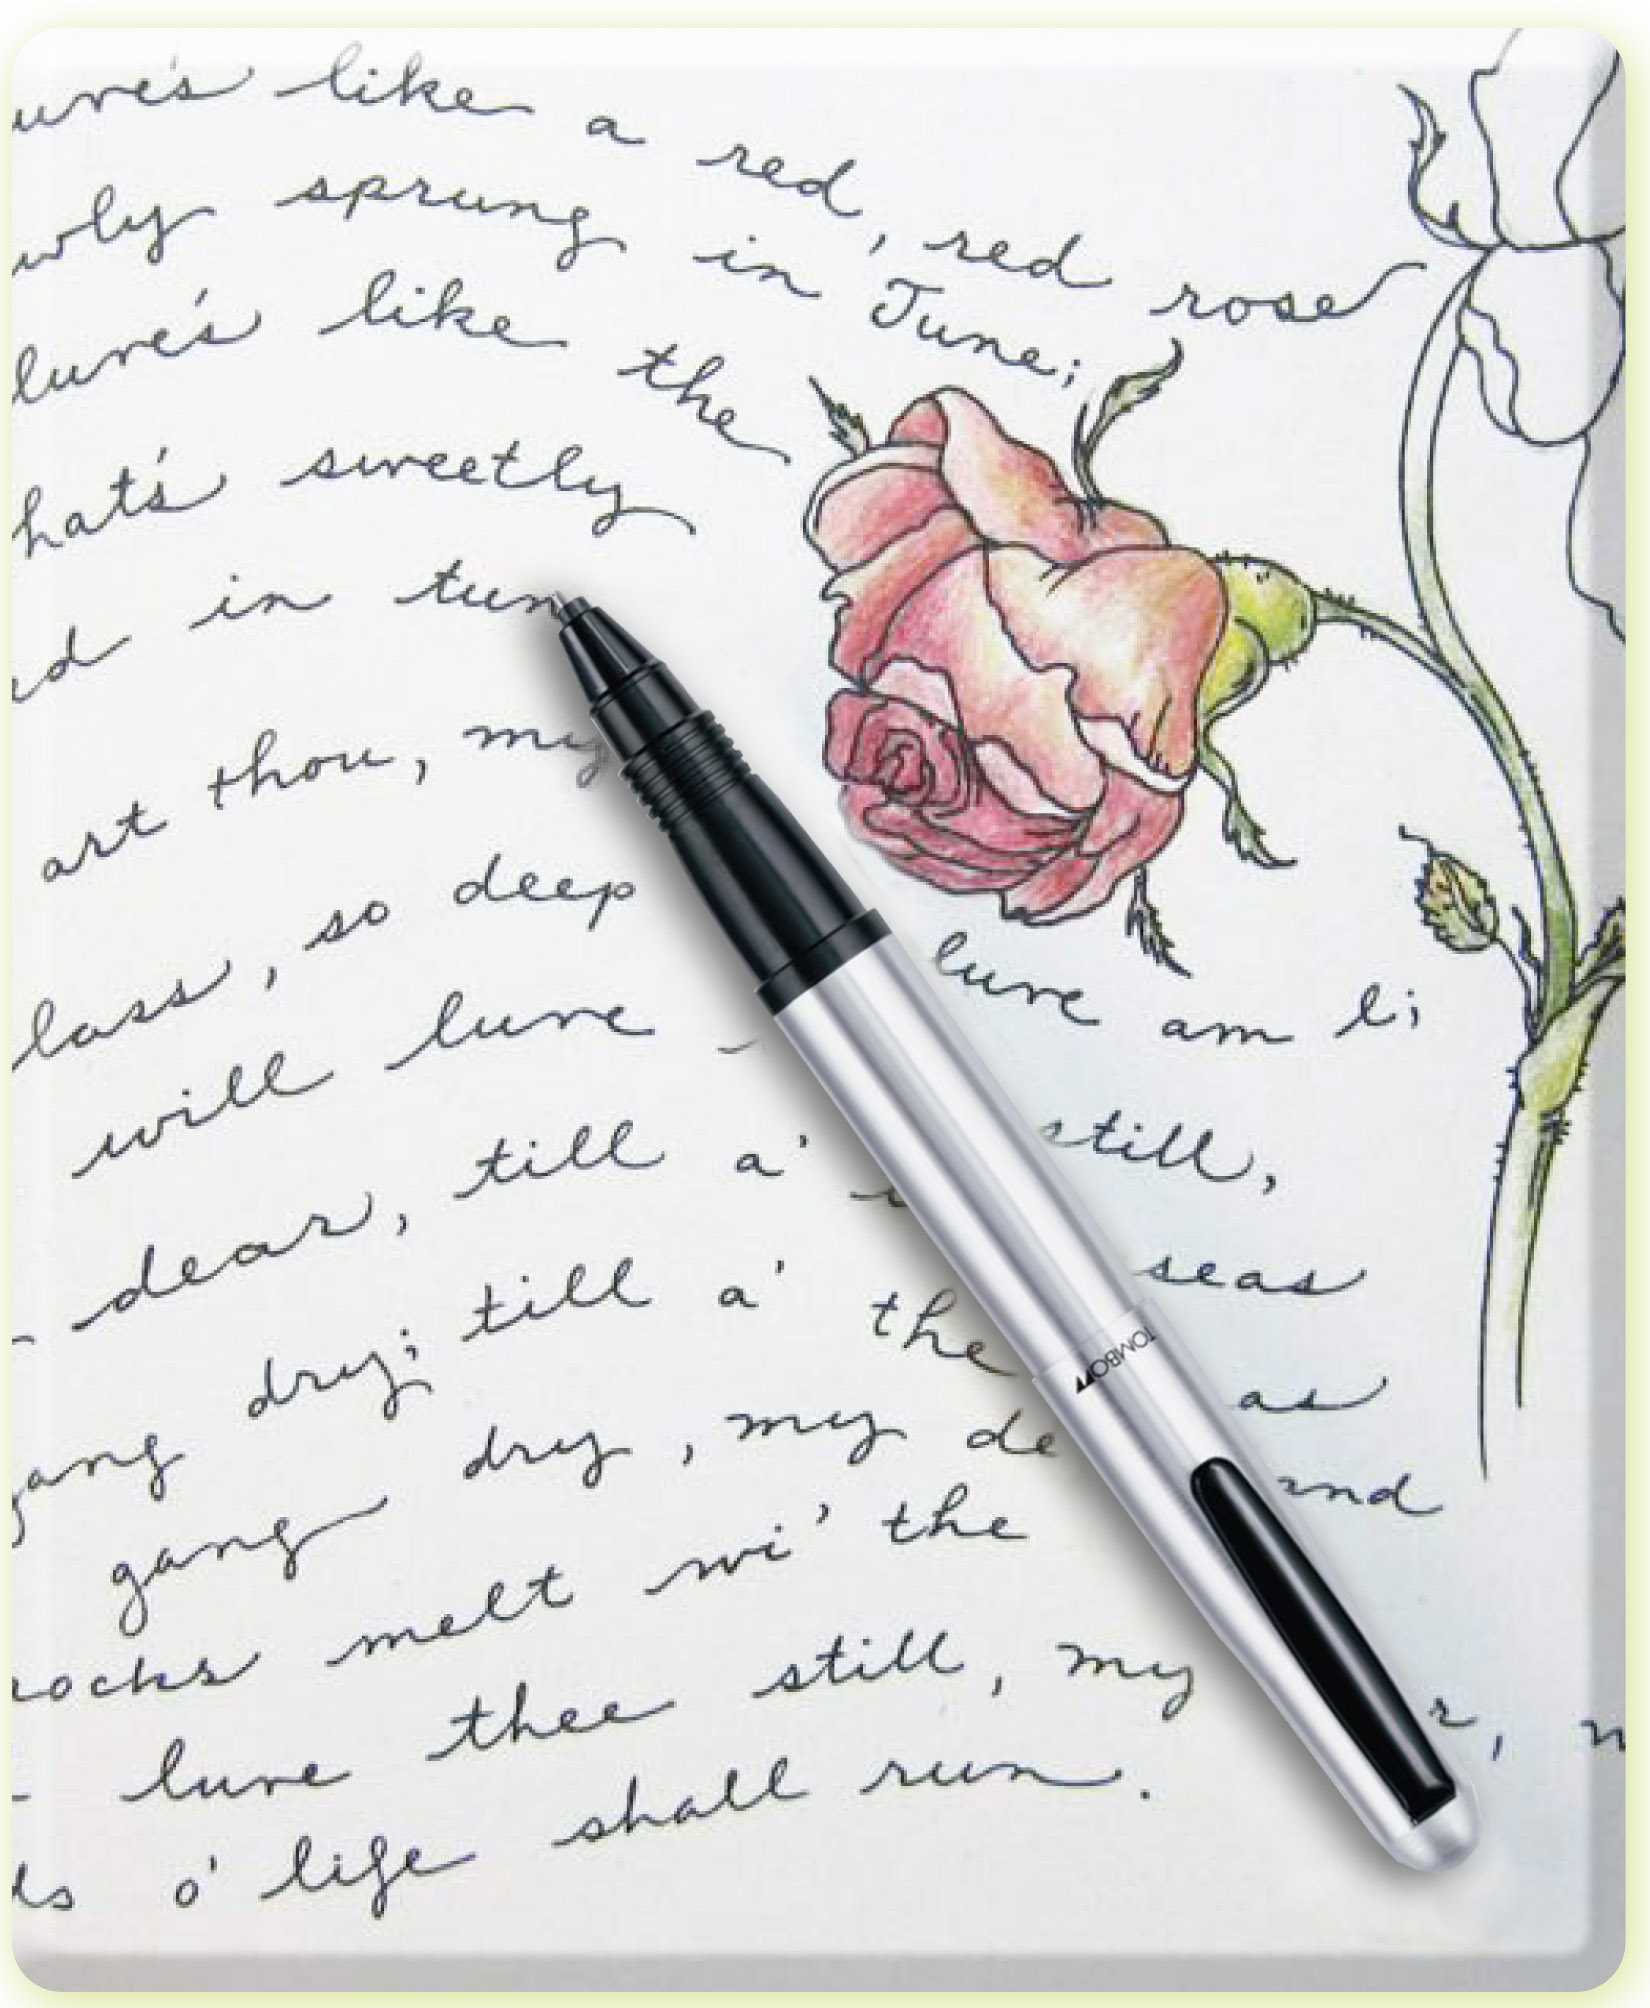 Drawn red rose pen drawing Pencils a Robert used I